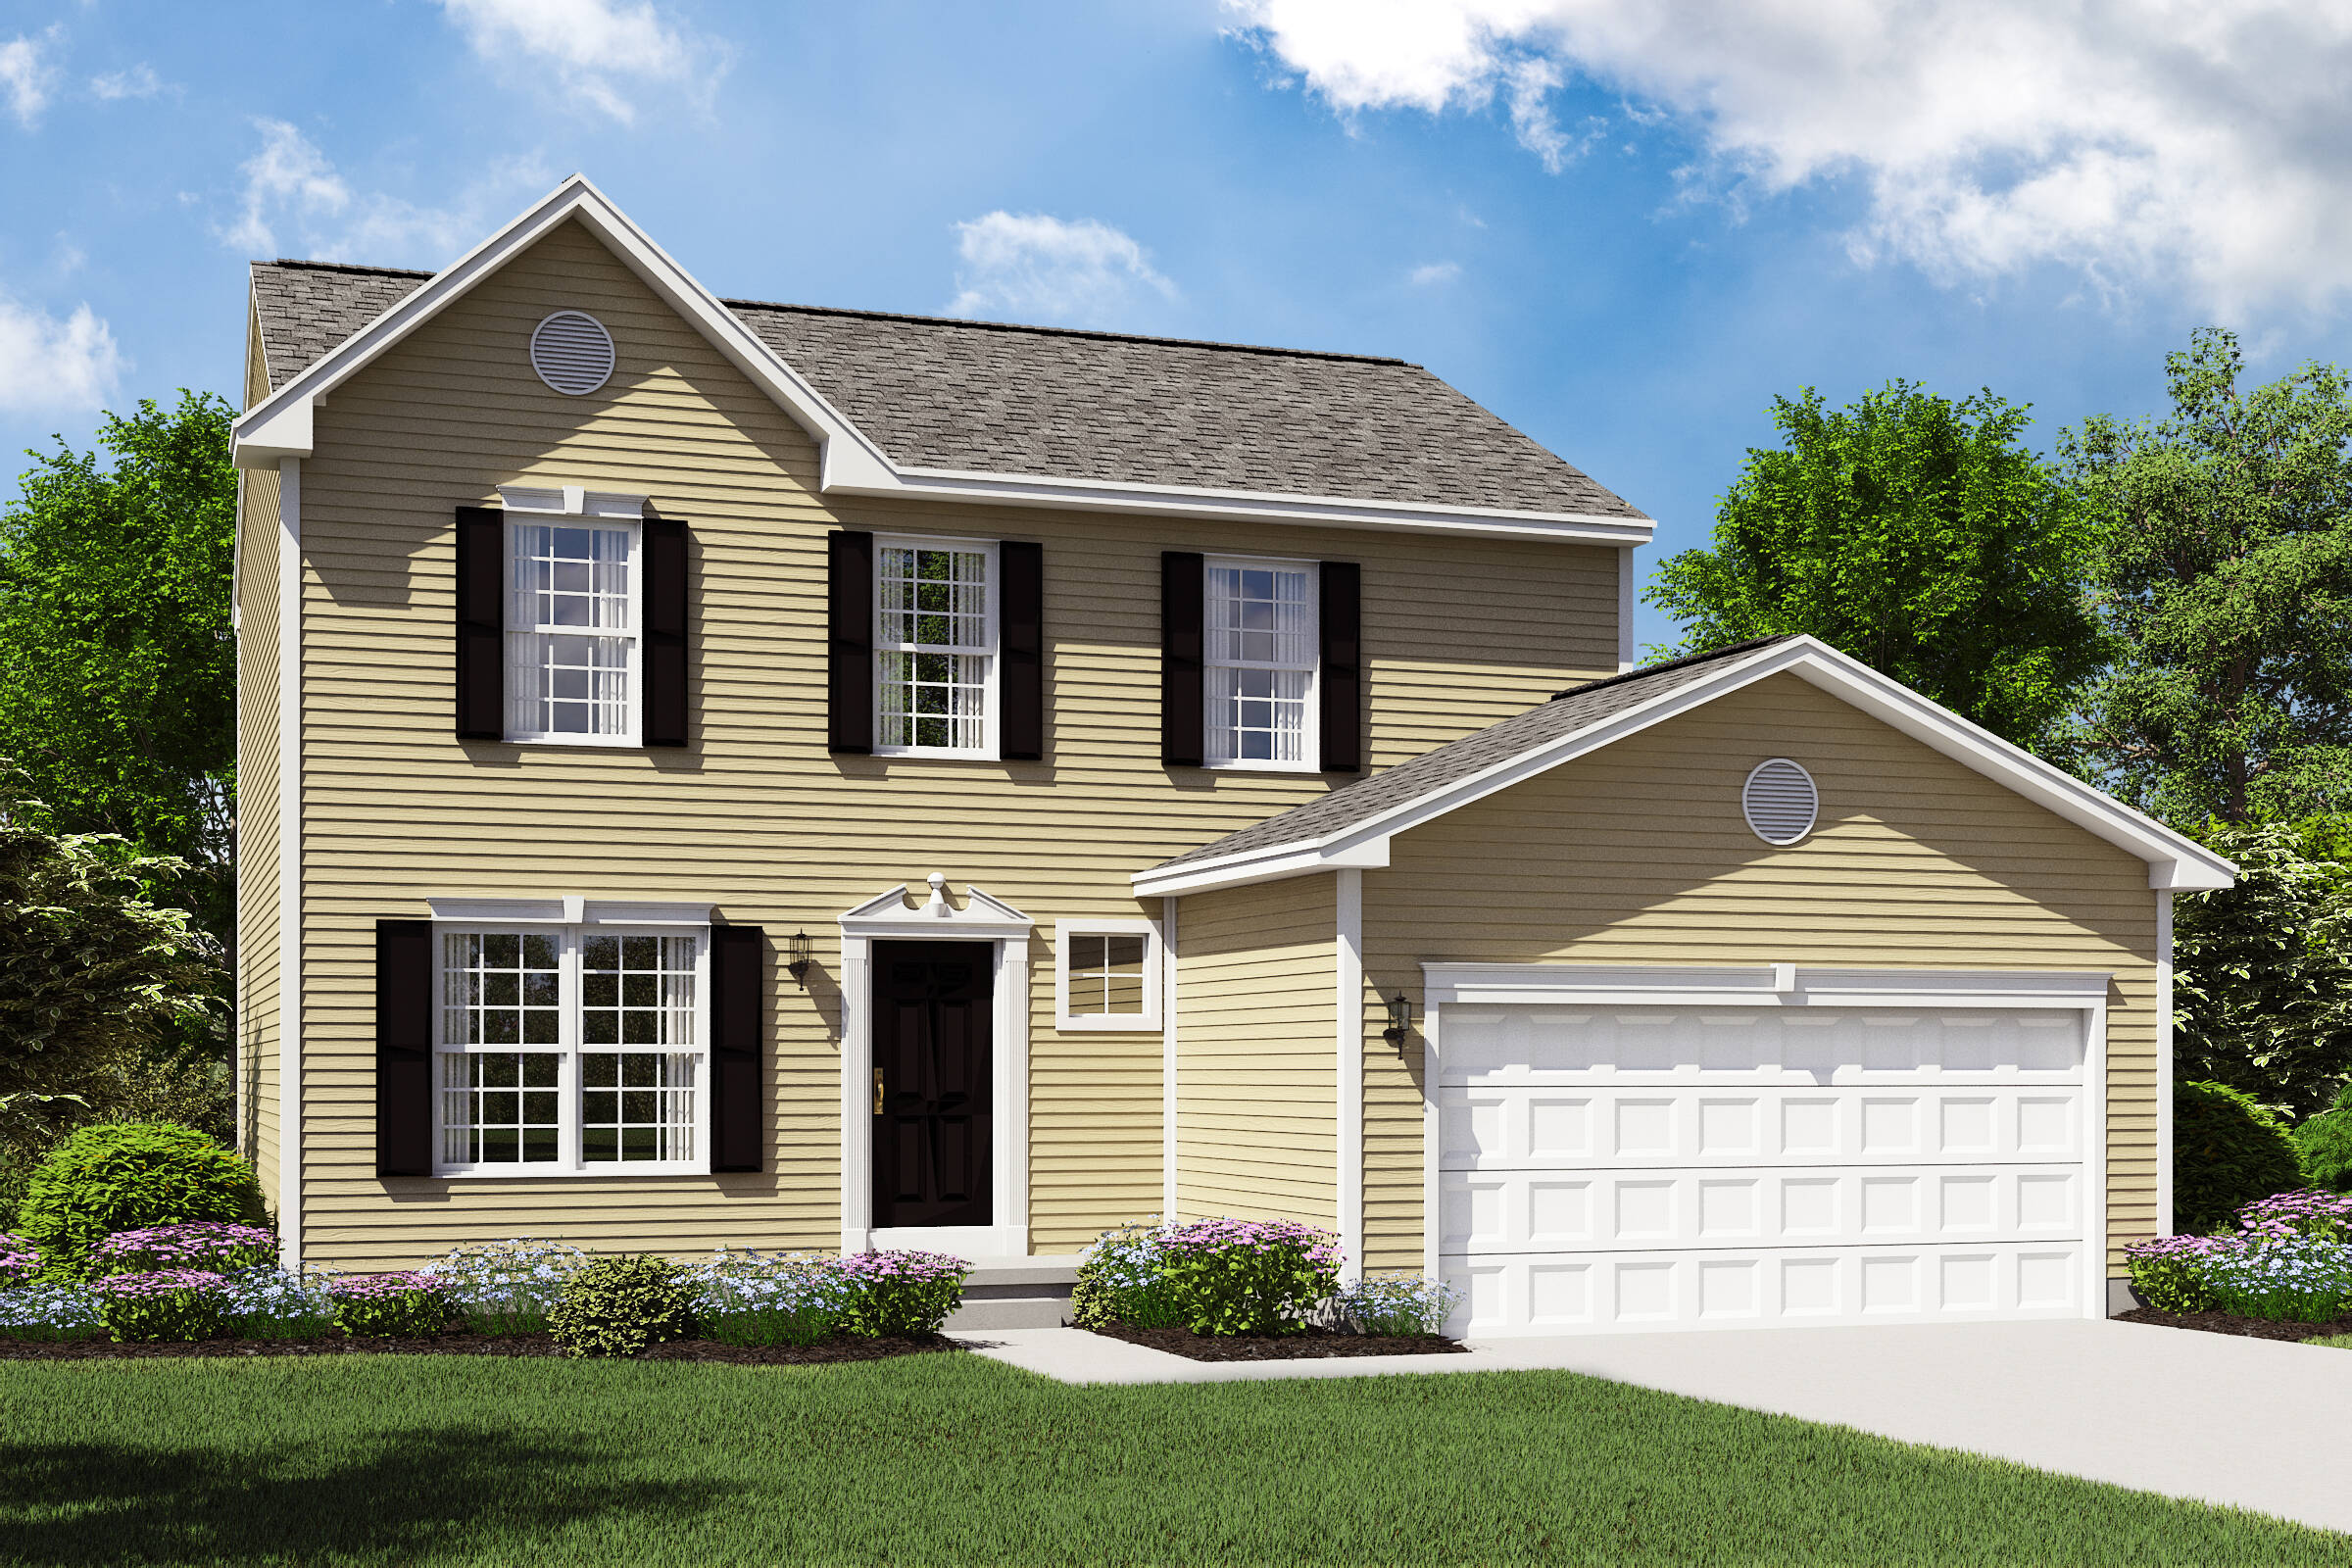 concord bs homes for sales northeast ohio